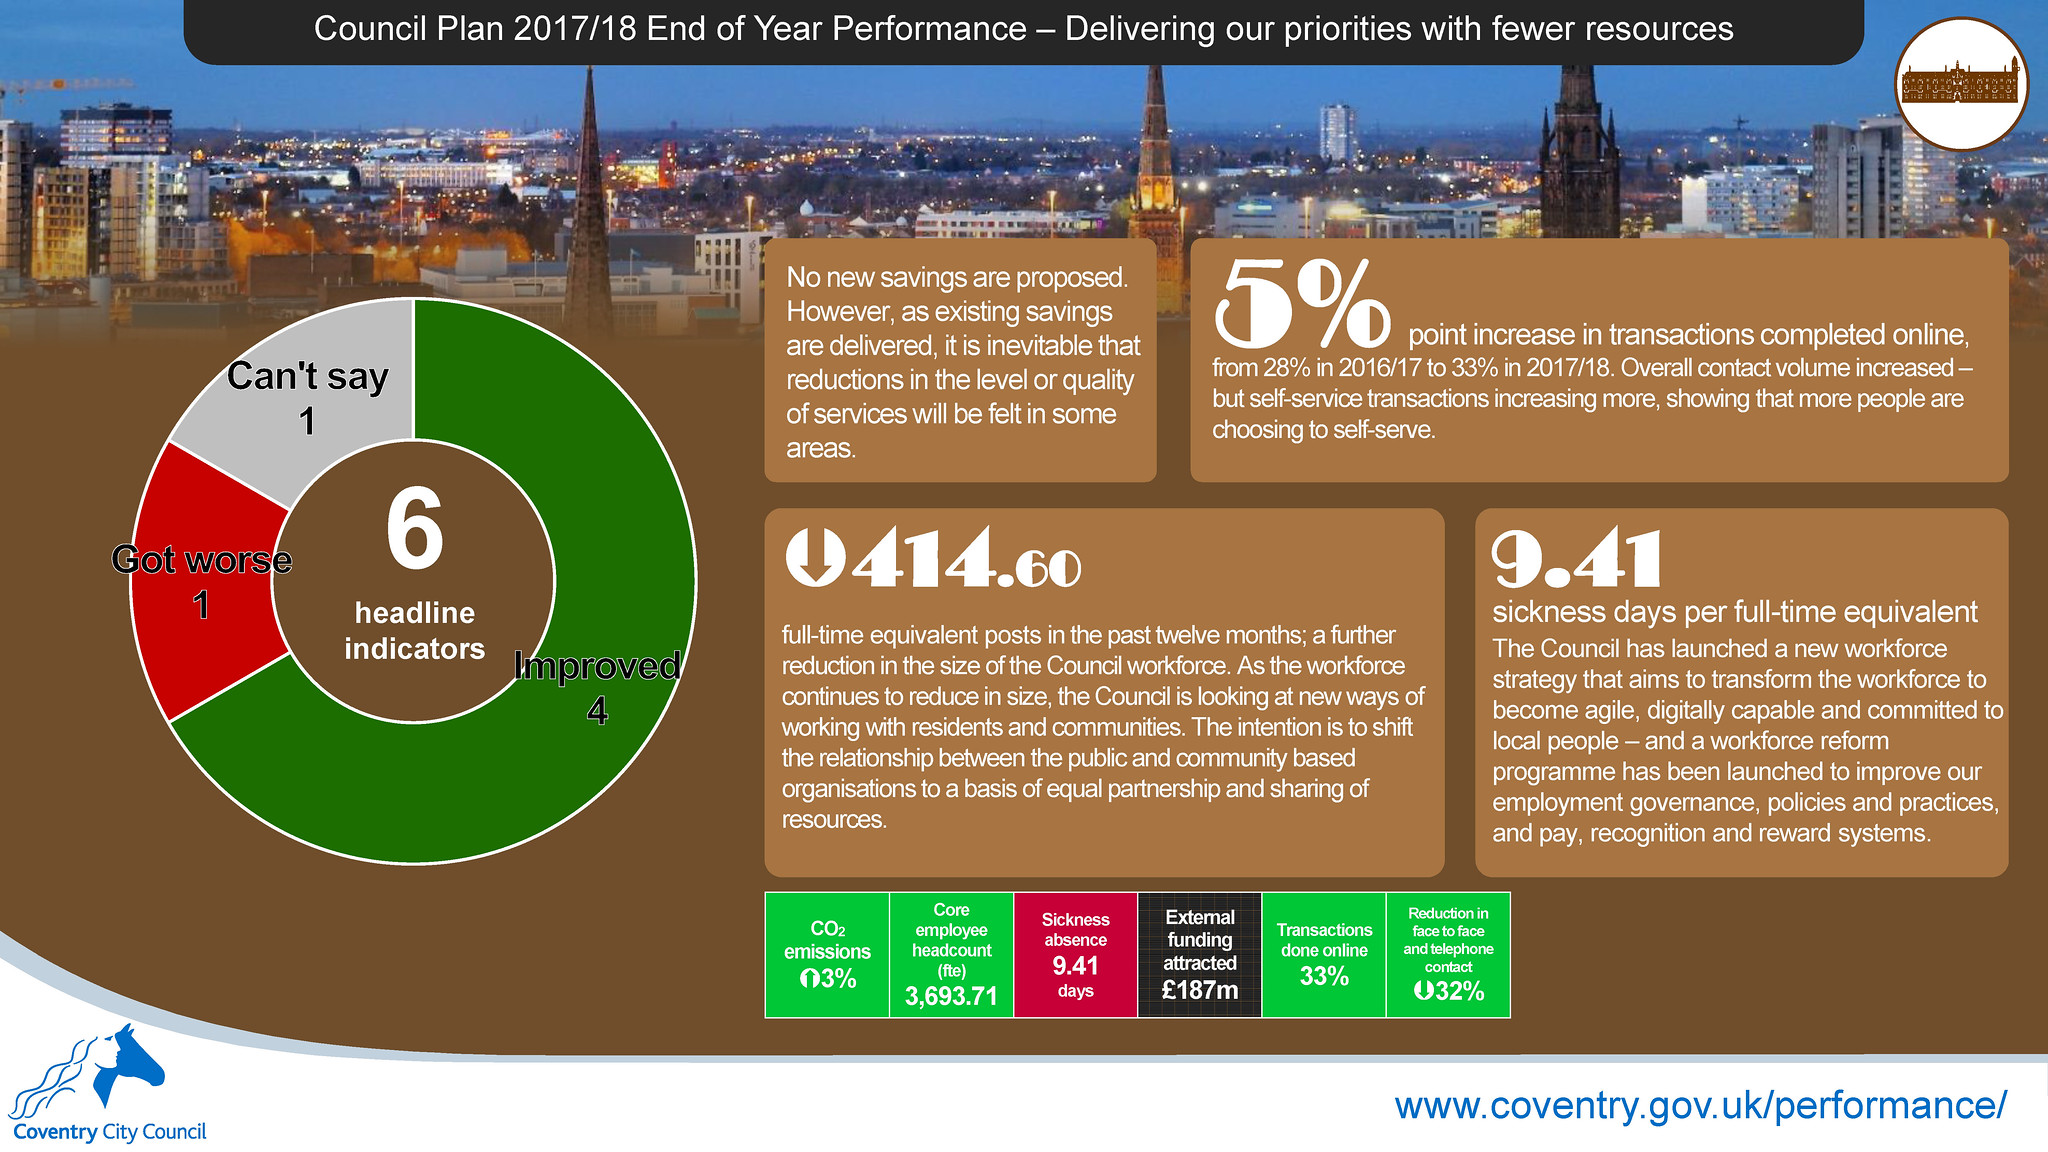 Delivering our priorities with fewer resources - Council Plan 2017-18 end of year performance report infographic - Coventry City Council.jpg